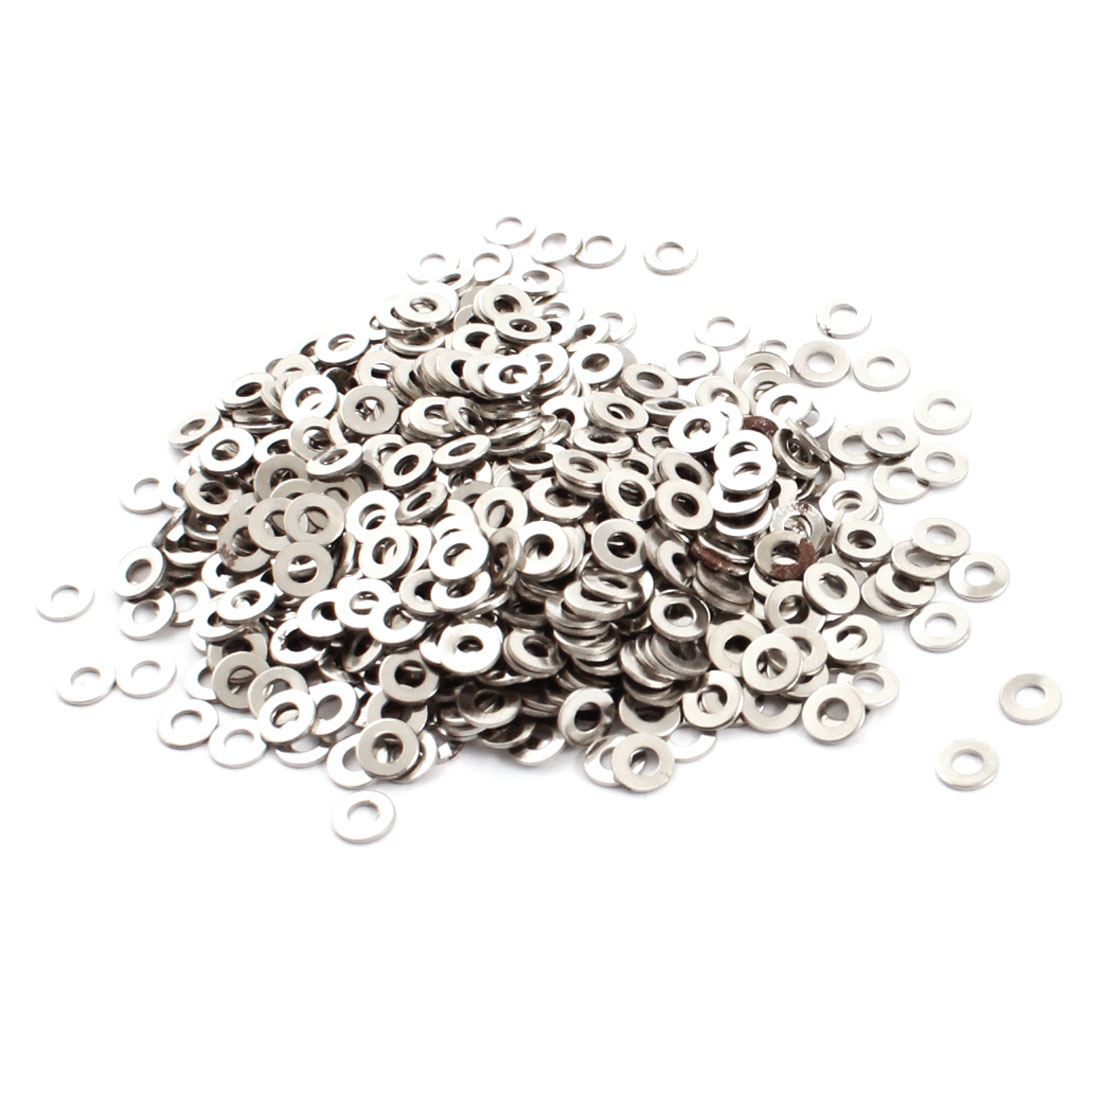 1000Pcs Spare Parts 2mm x 4.5mm x 0.4mm Circle Metal Washers Spacers Rings Fasteners